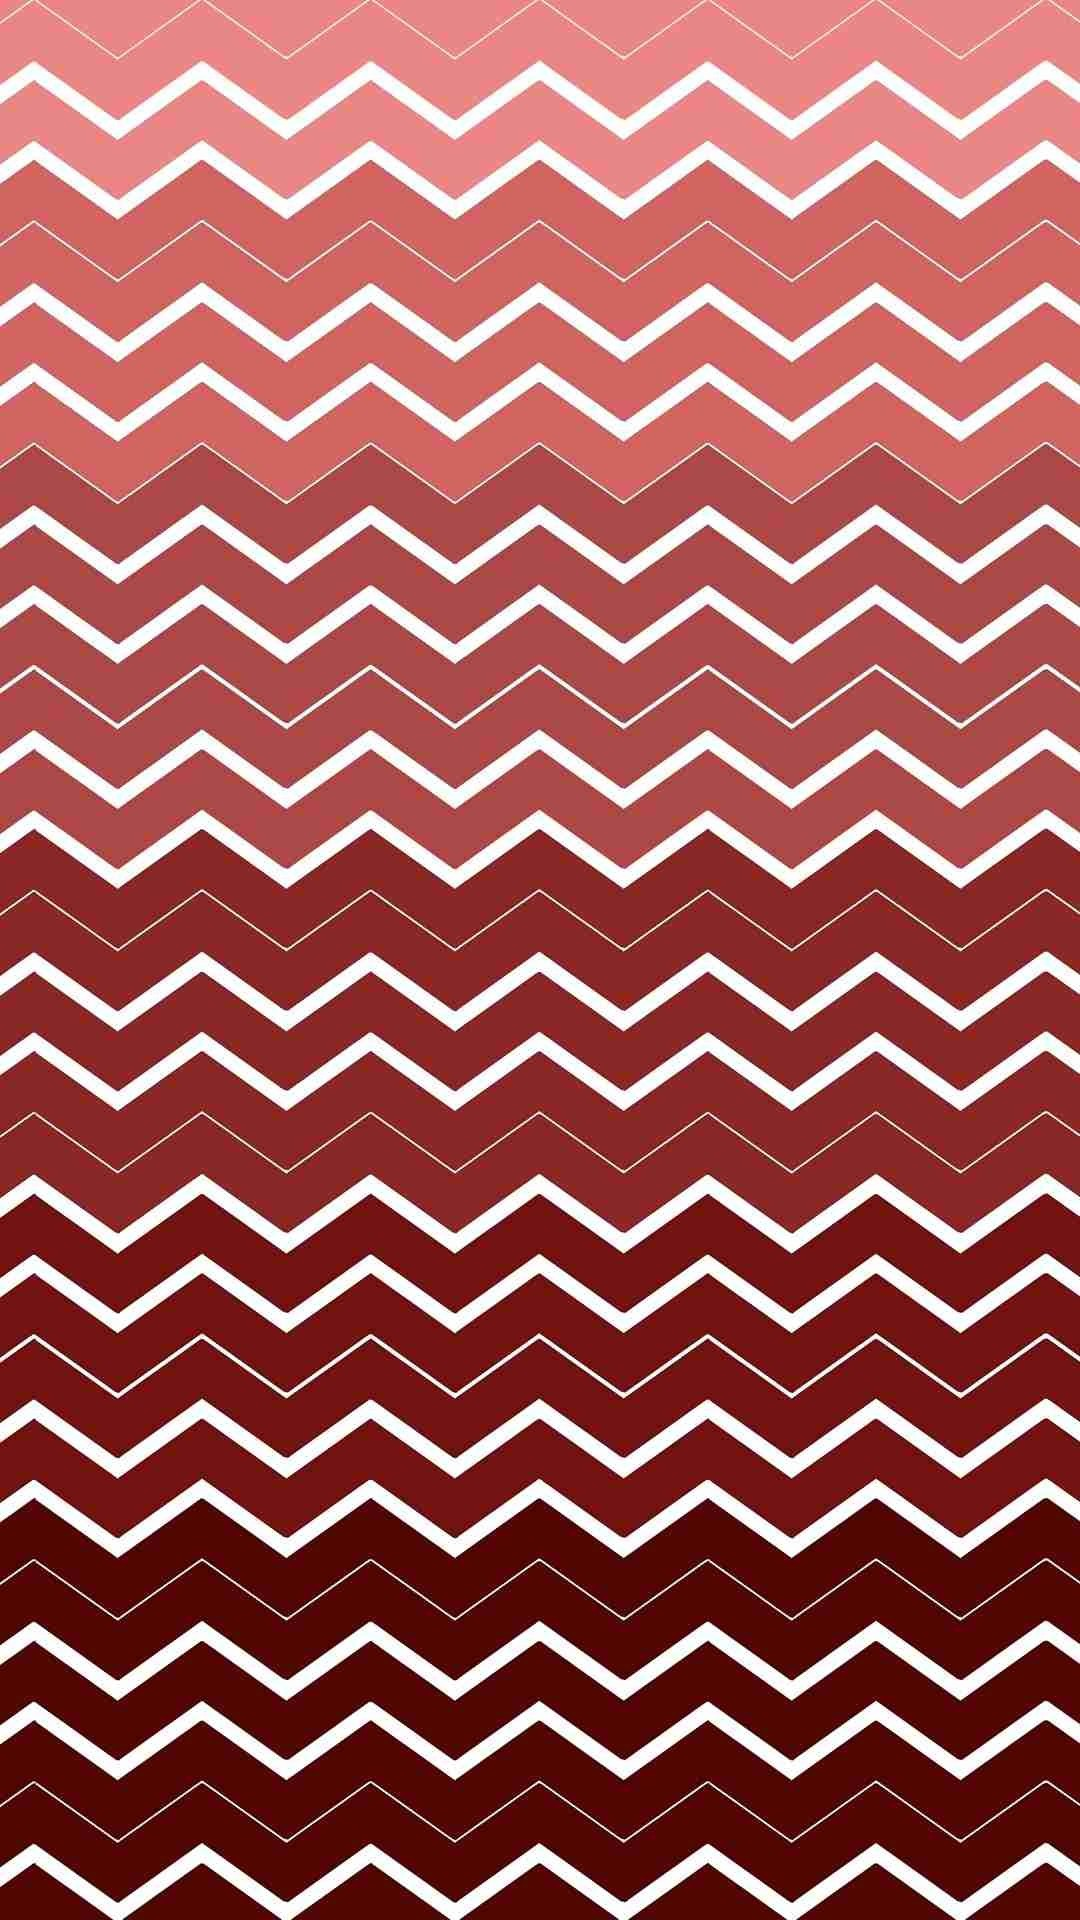 Chevron and Zigzag Pattern iPhone 6 Plus Wallpaper – Ombre Red and White # iPhone #